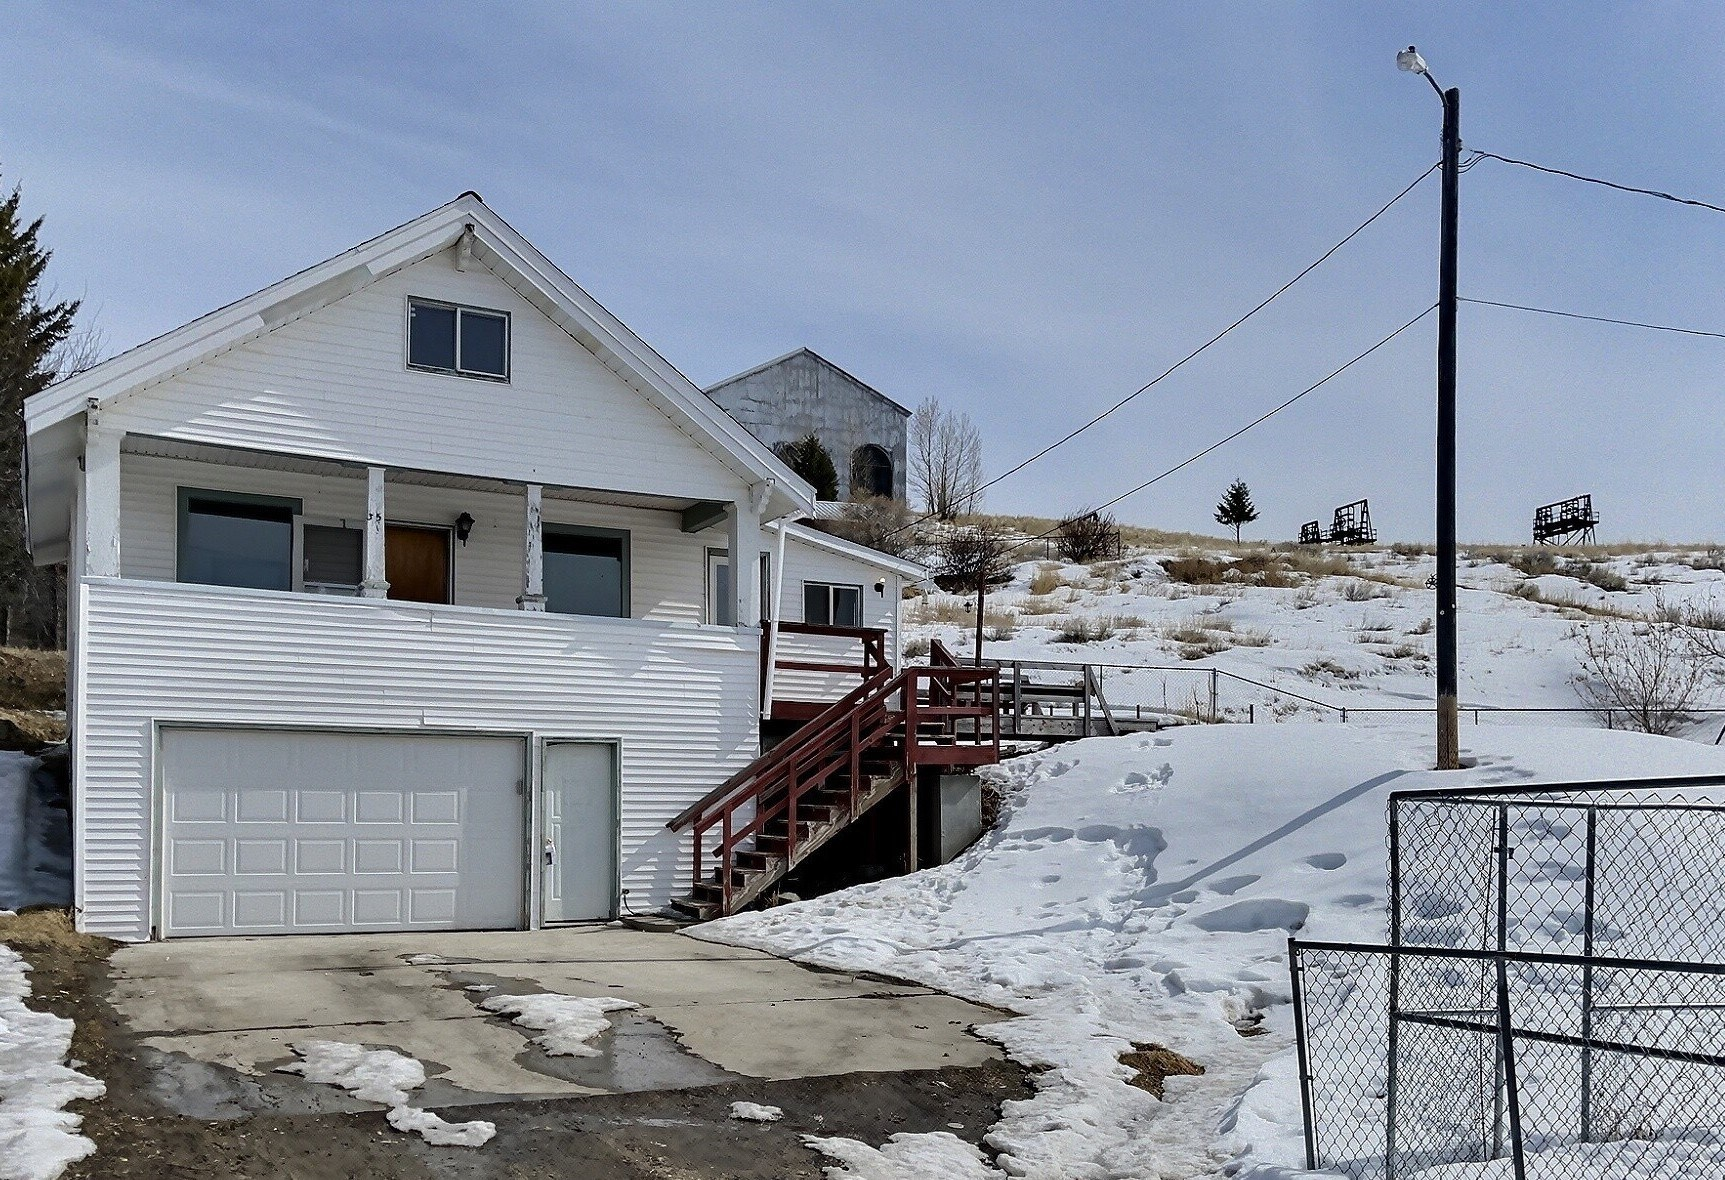 Single family home, Investment Property for Sale Butte, MT.